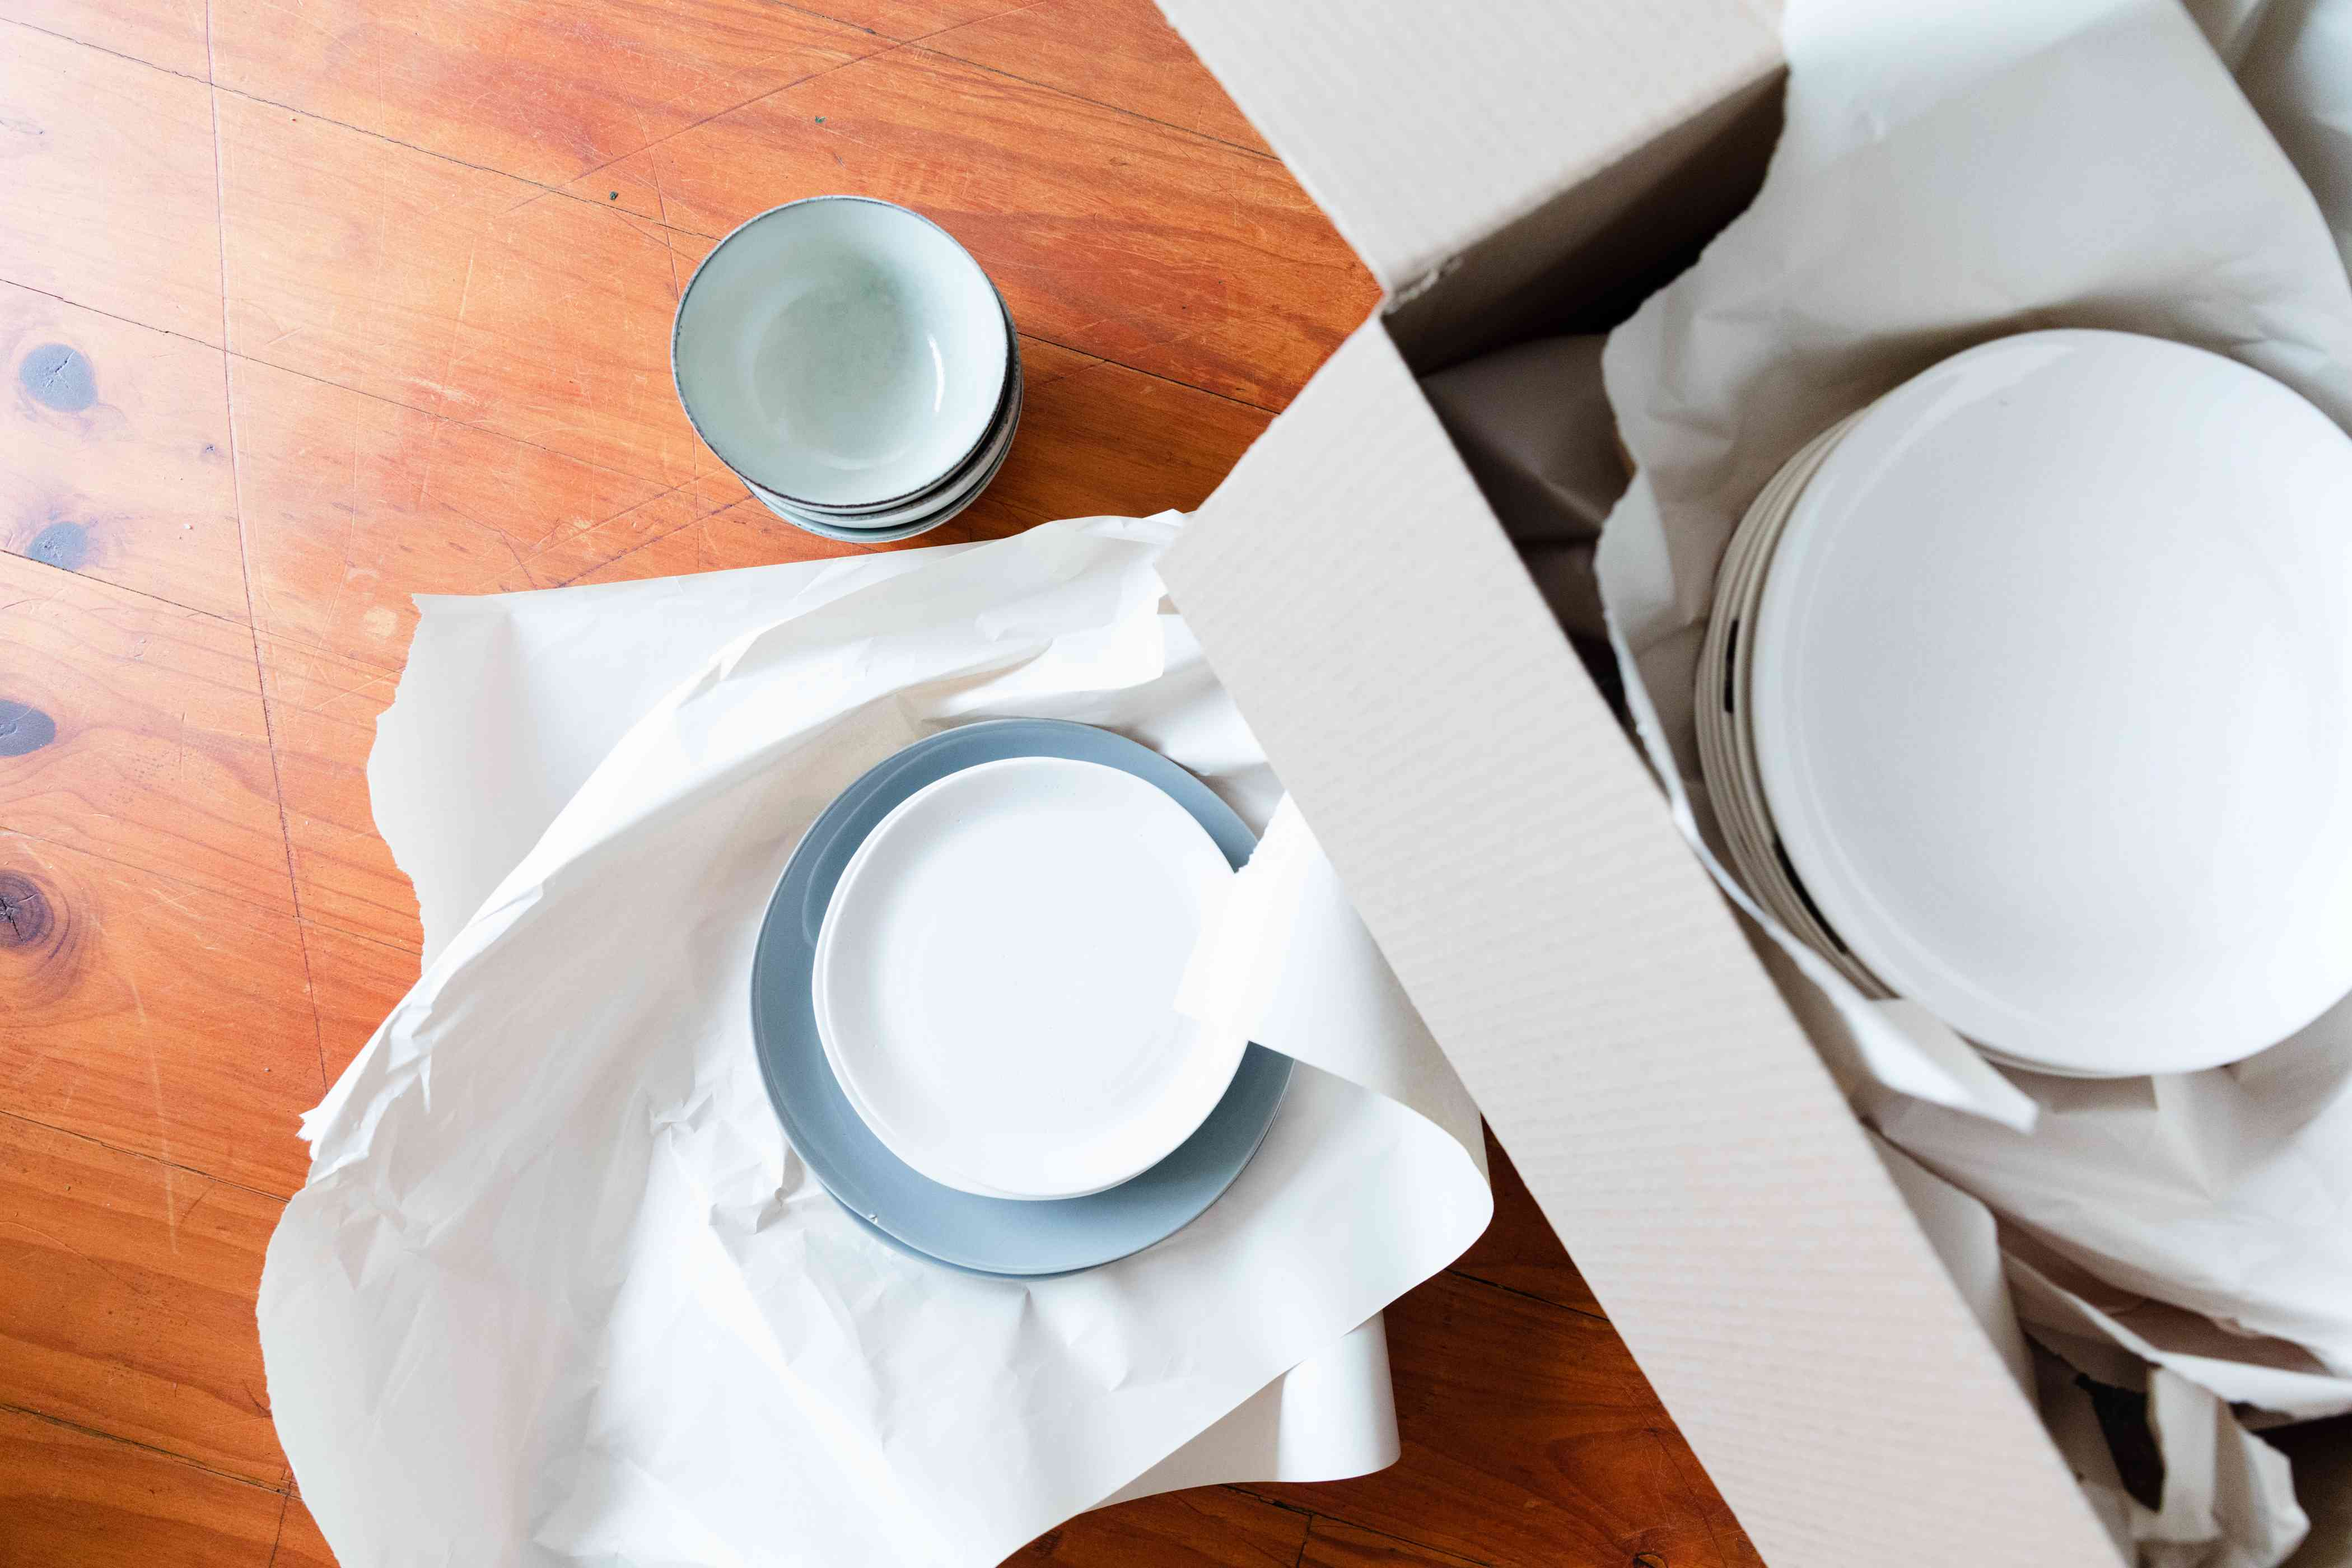 packing up dishes and plates